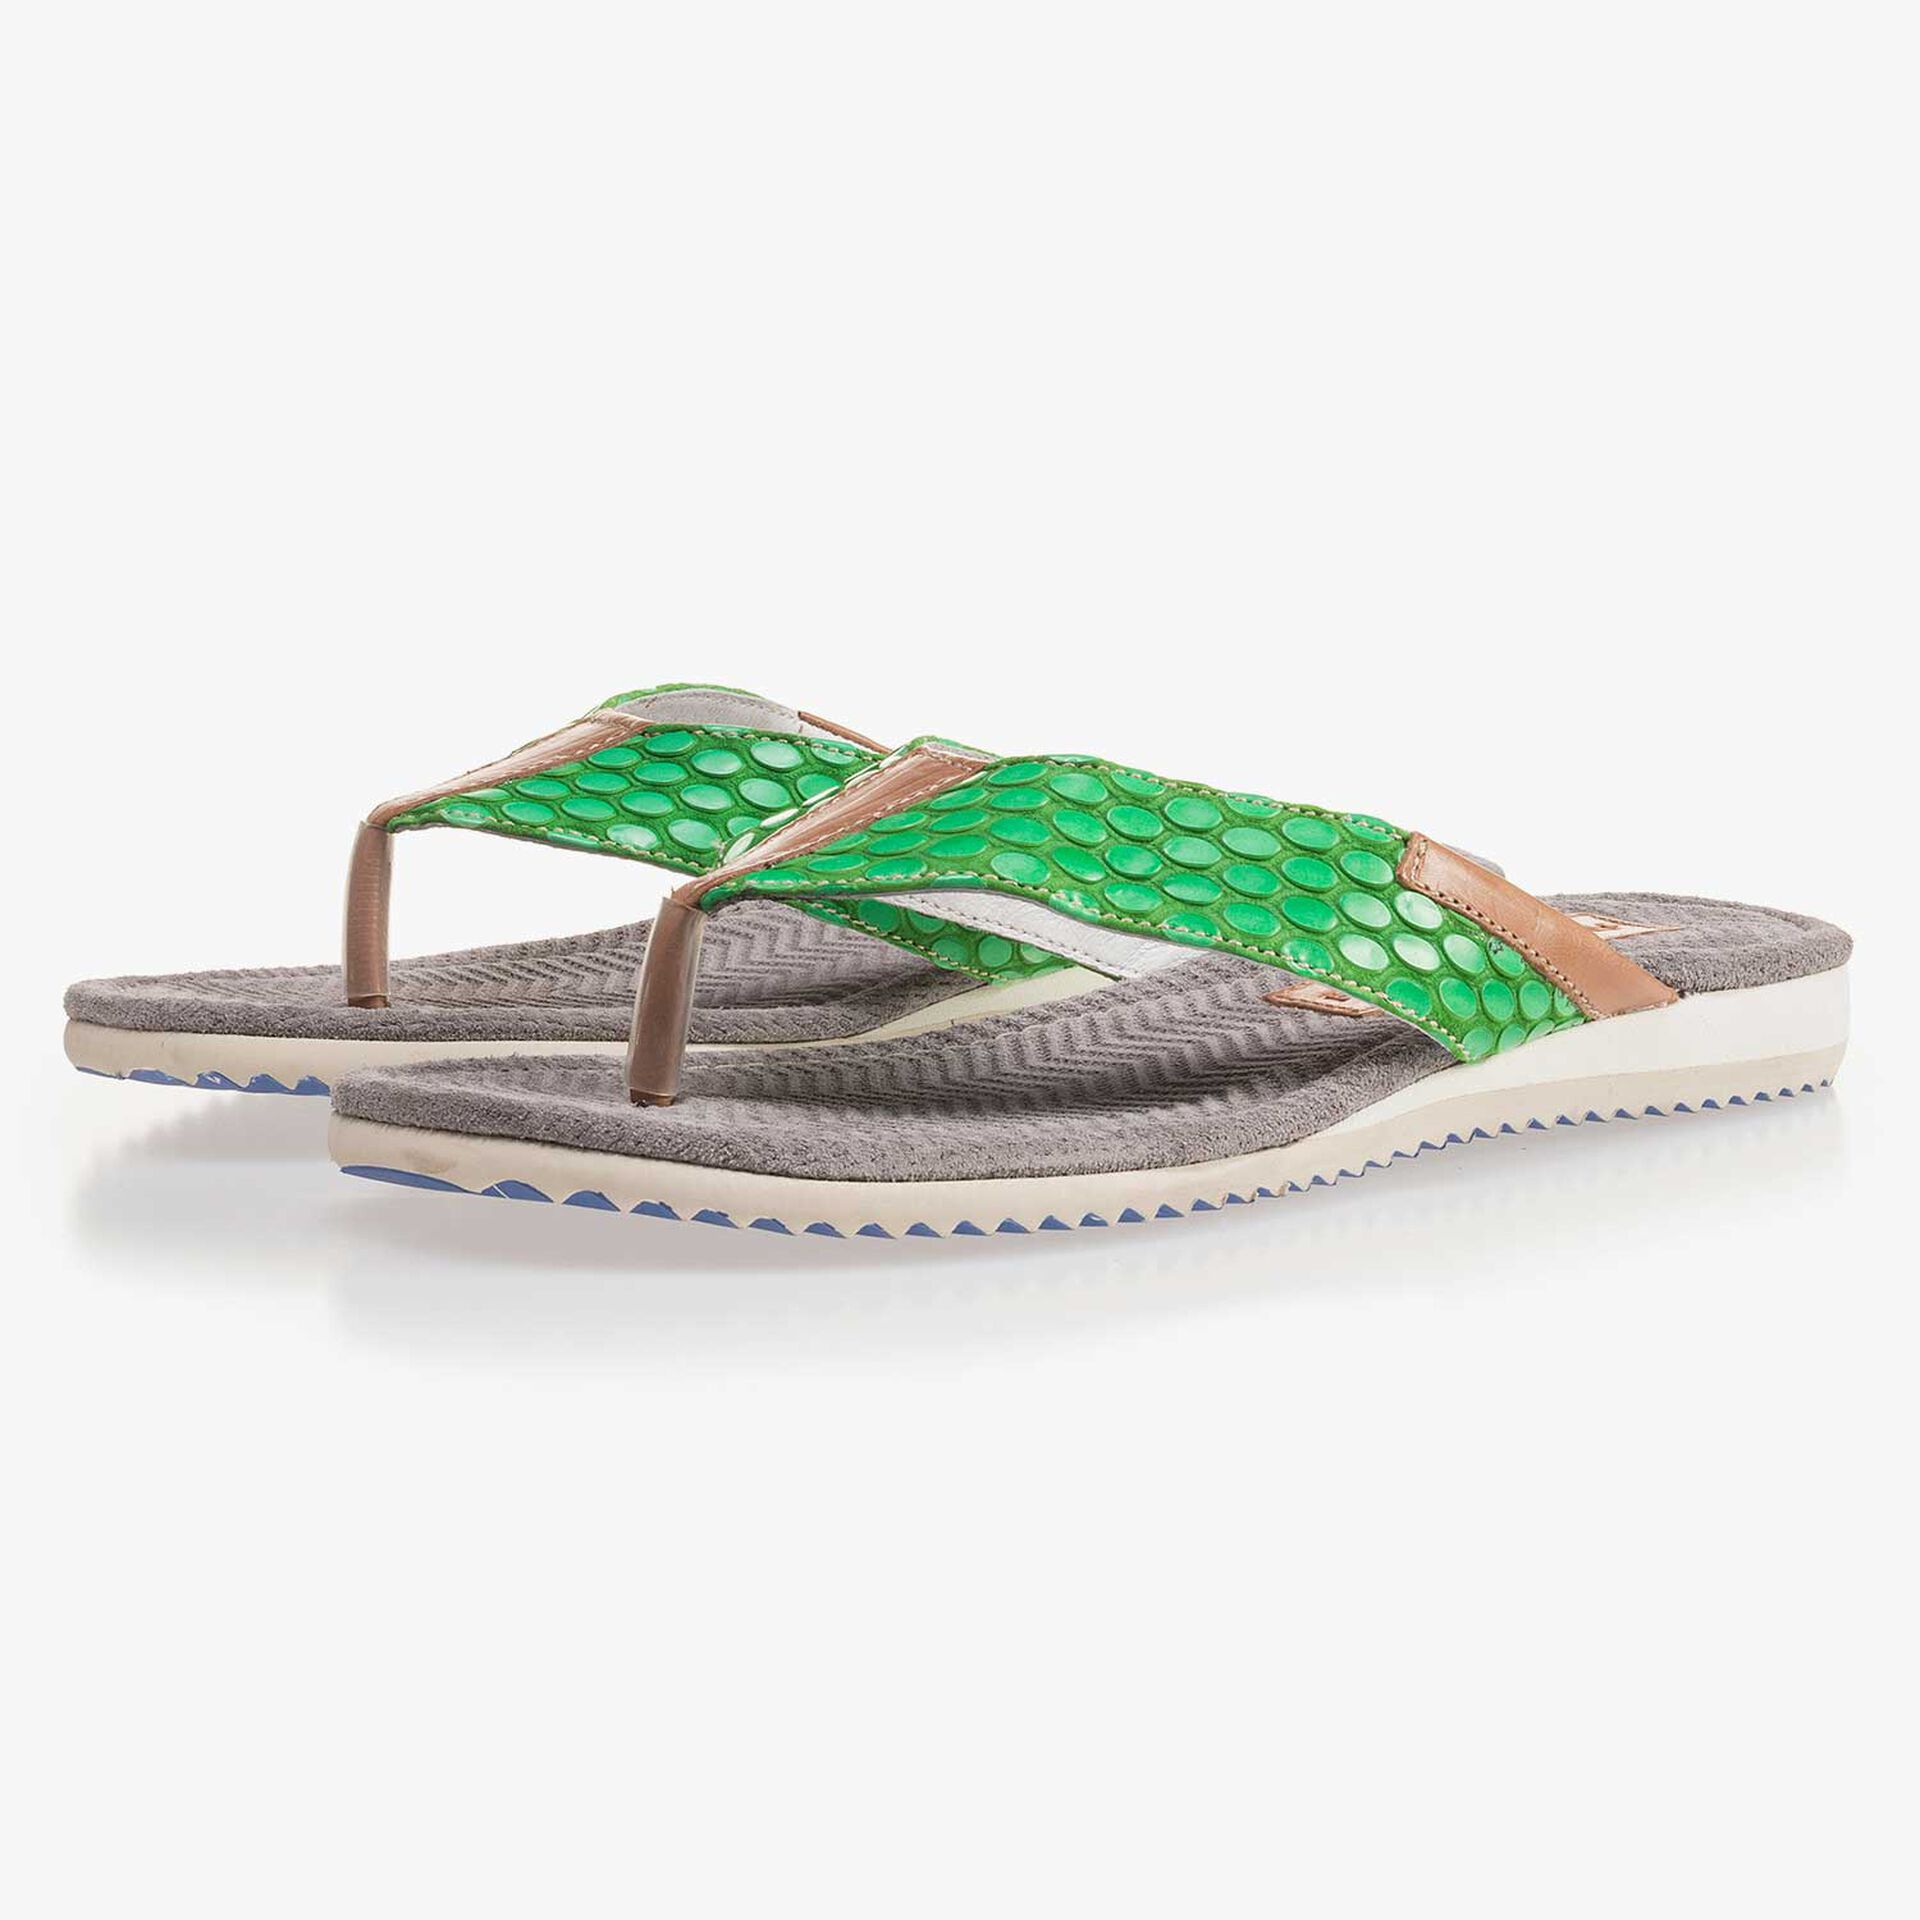 Green, printed slipper made of leather